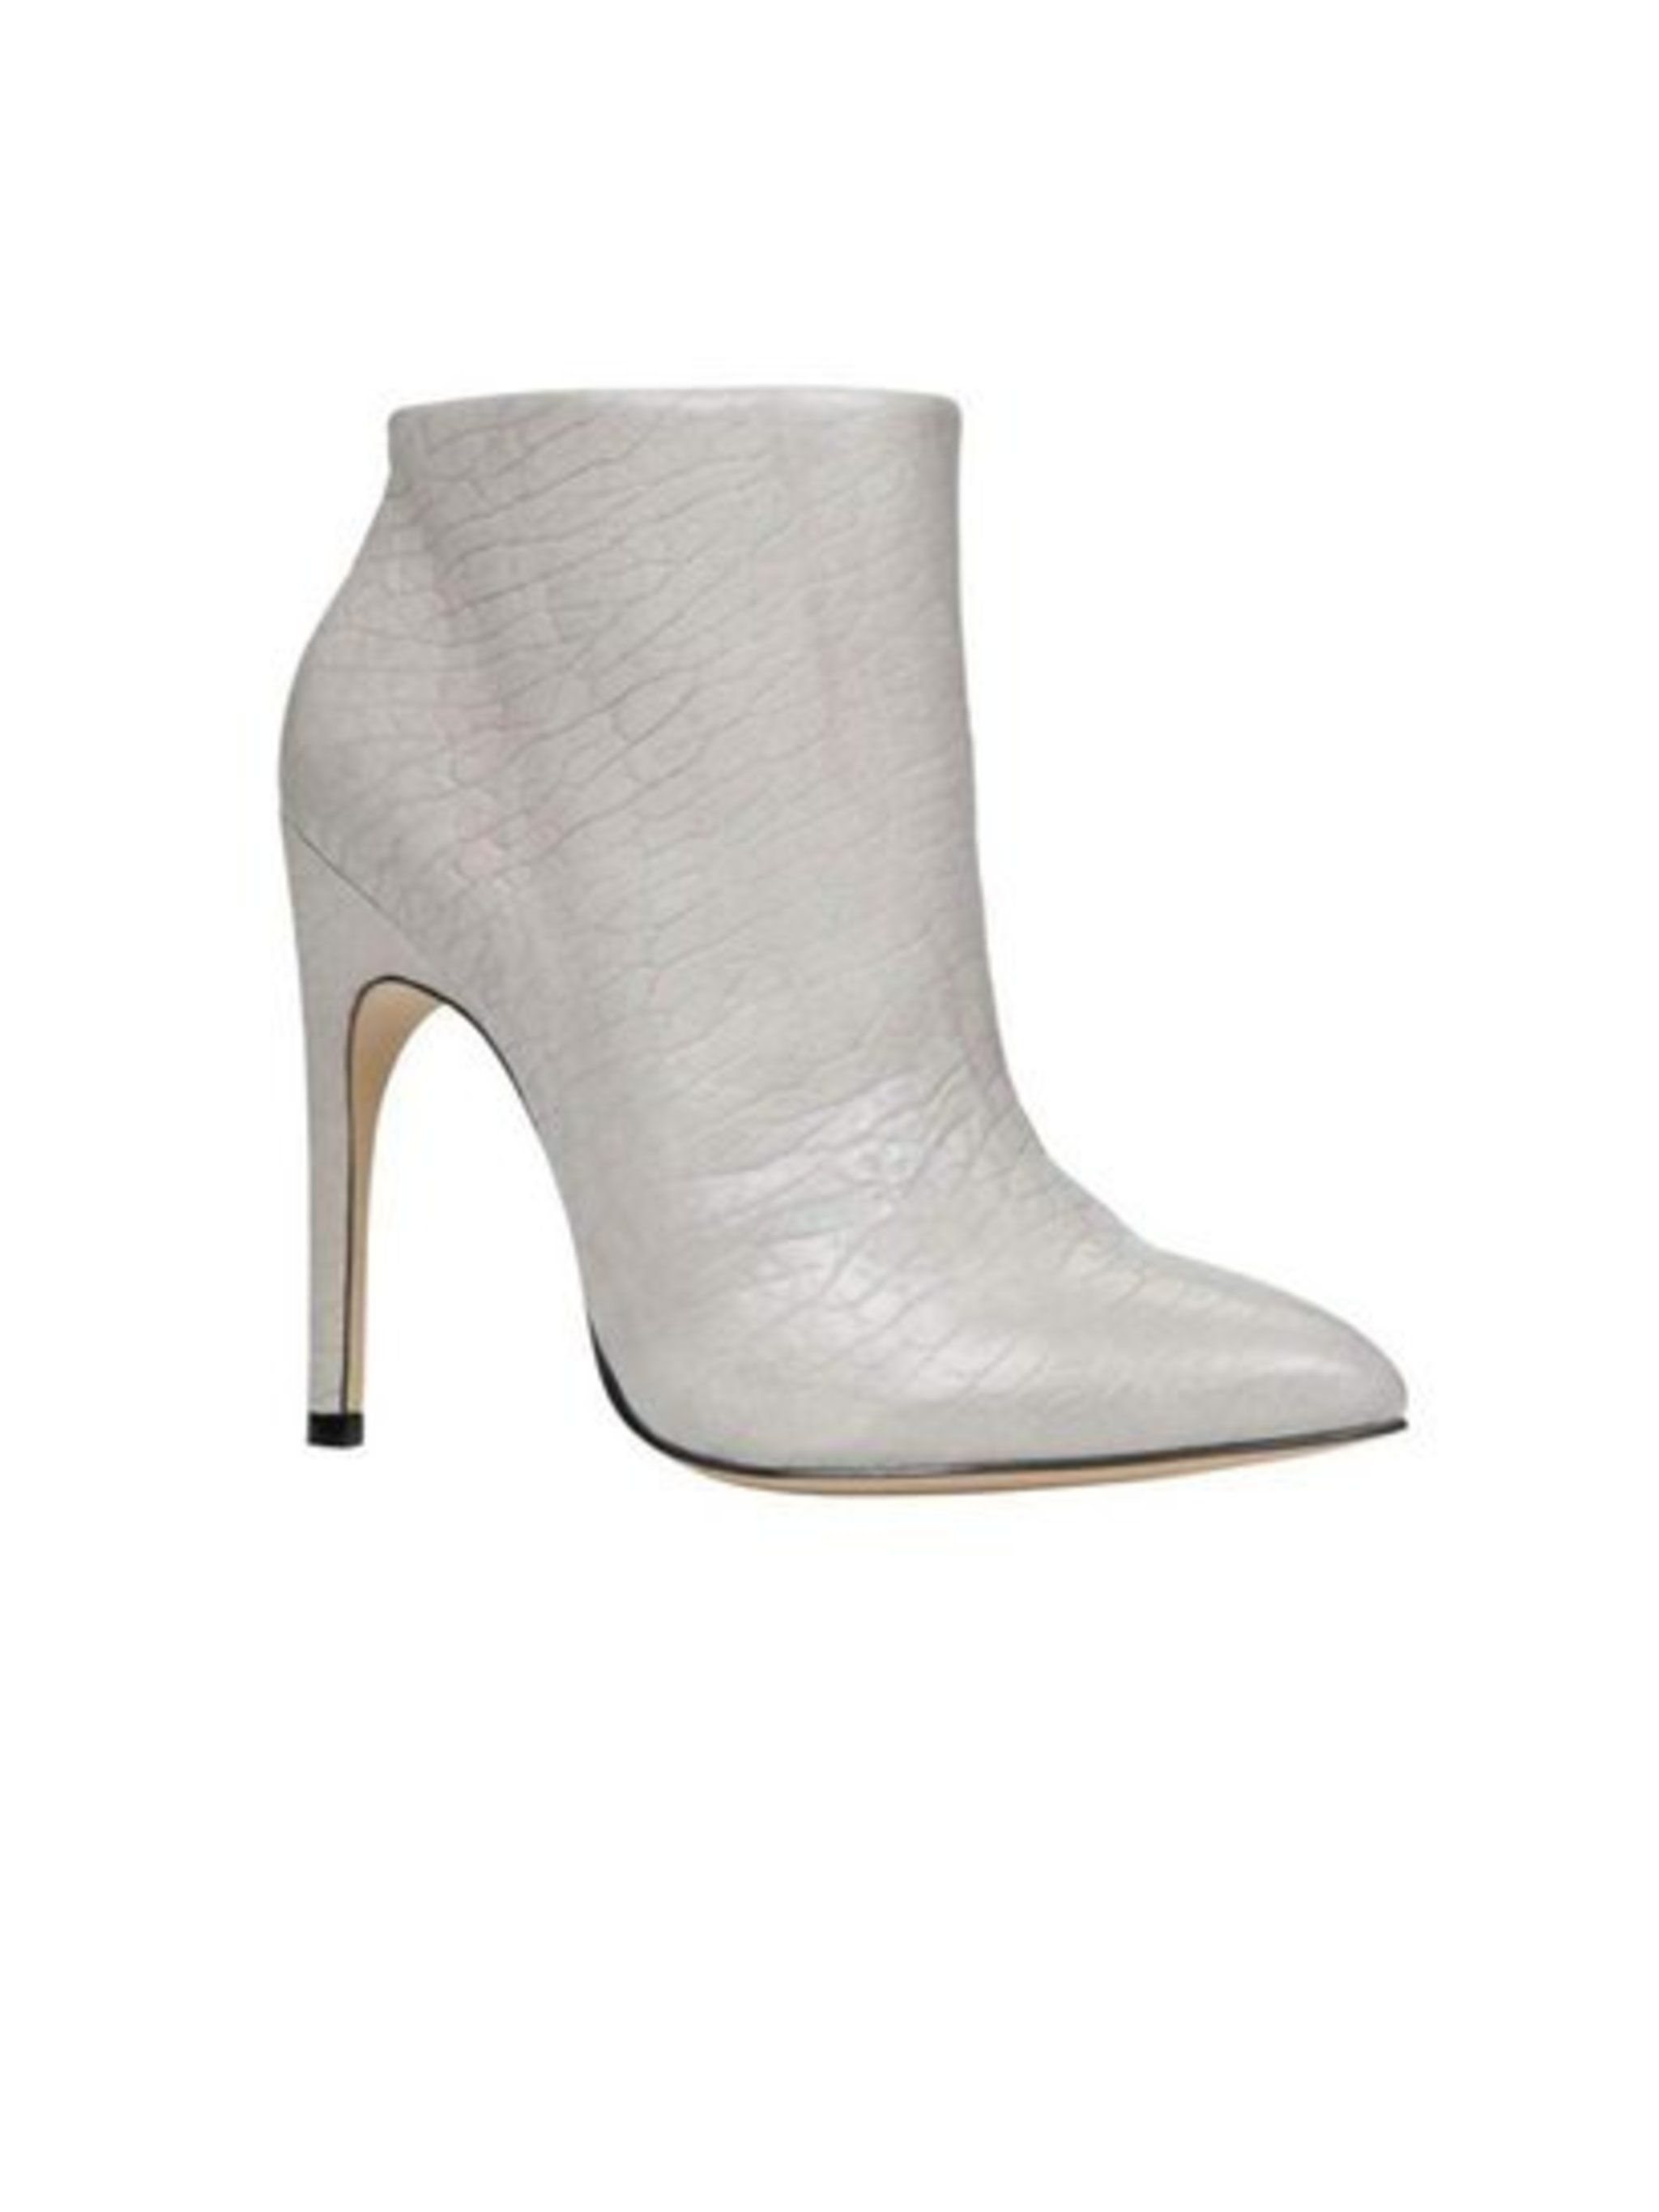 New neutral. Ankle boot, £110 from Aldo